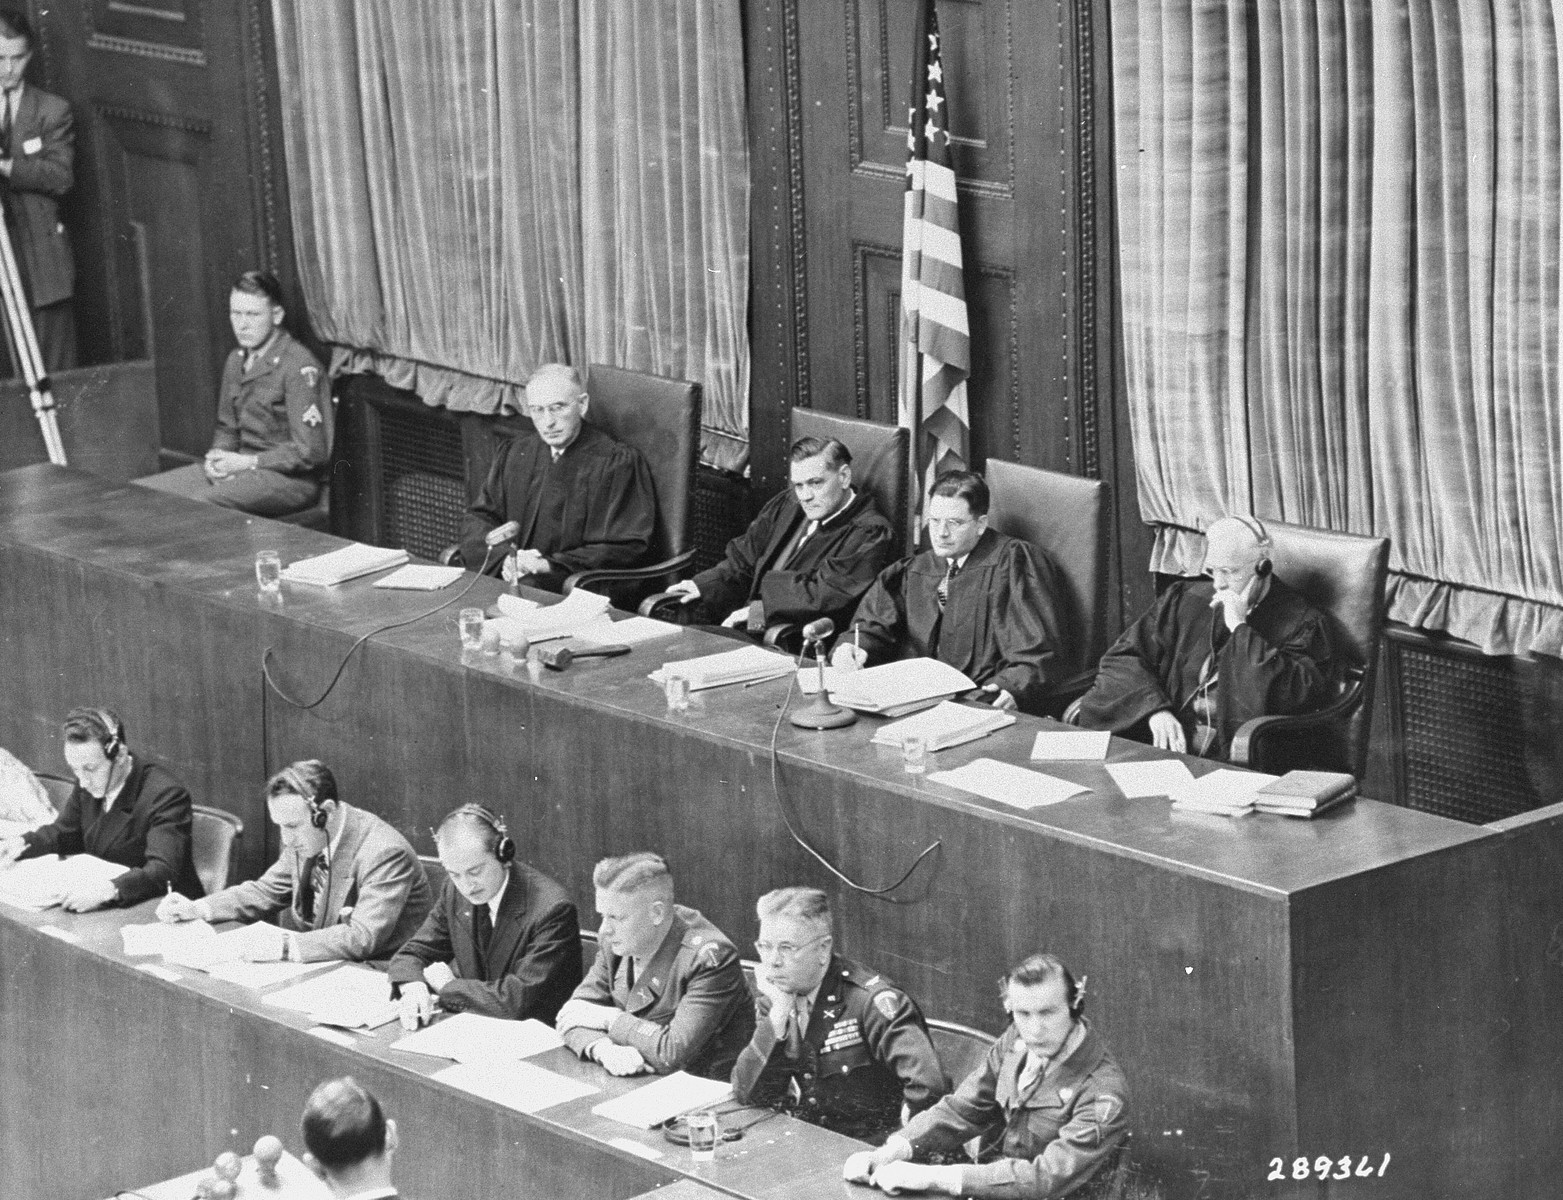 The four judges of Military Tribunal VI on the first day of the I.G. Farben Trial.  From left to right are James Morris, Curtis G. Shake, Paul M. Hebert, and Clarence F. Merrell.